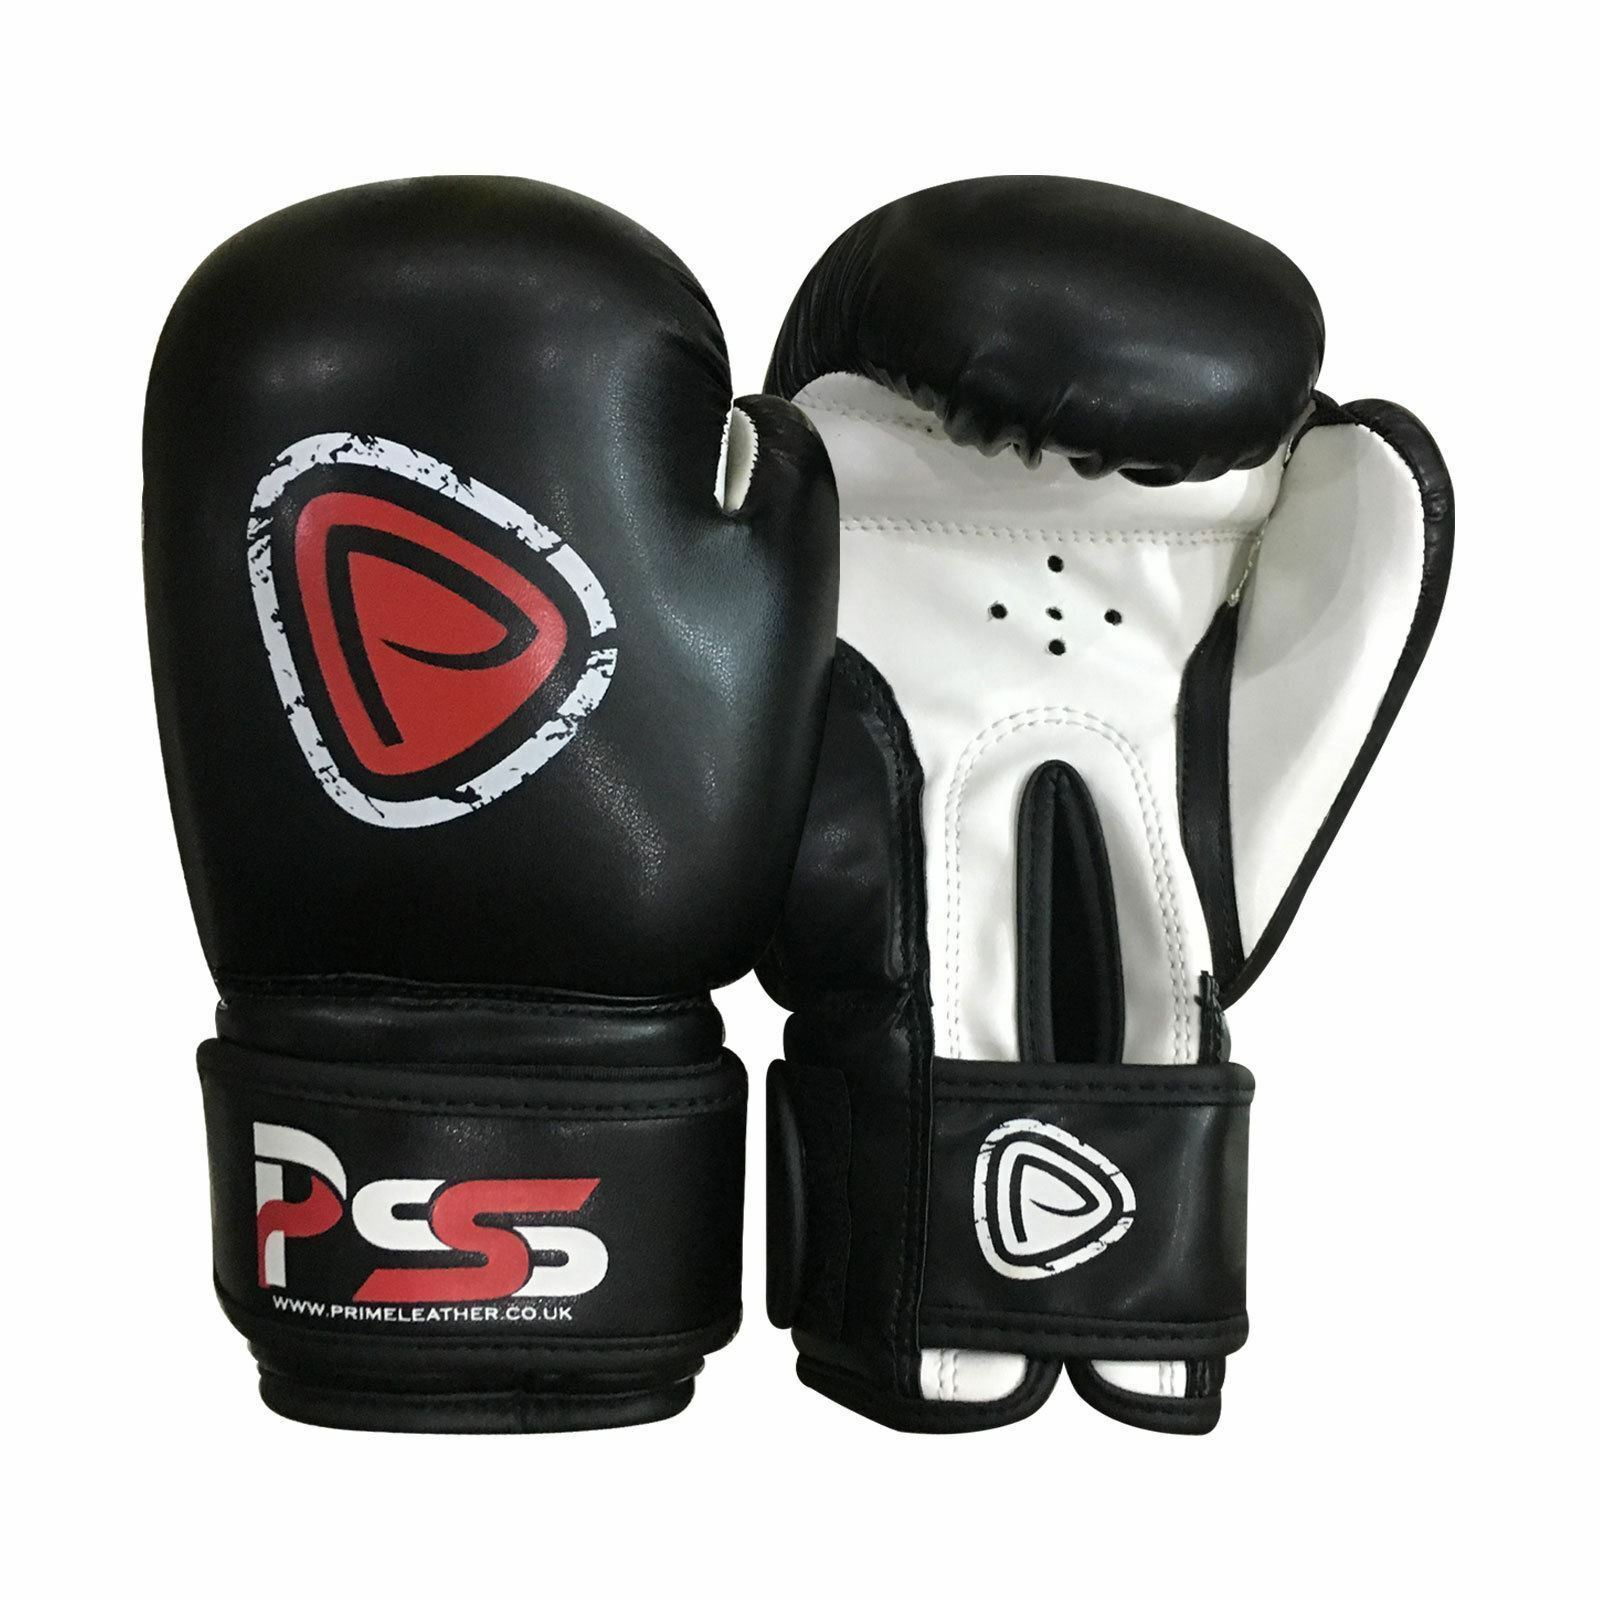 Junior Kids Boxing Boxing SET Boxing Kids Uniform Boxing Gloves Focus Pads Age 3-14 Years 15ac12